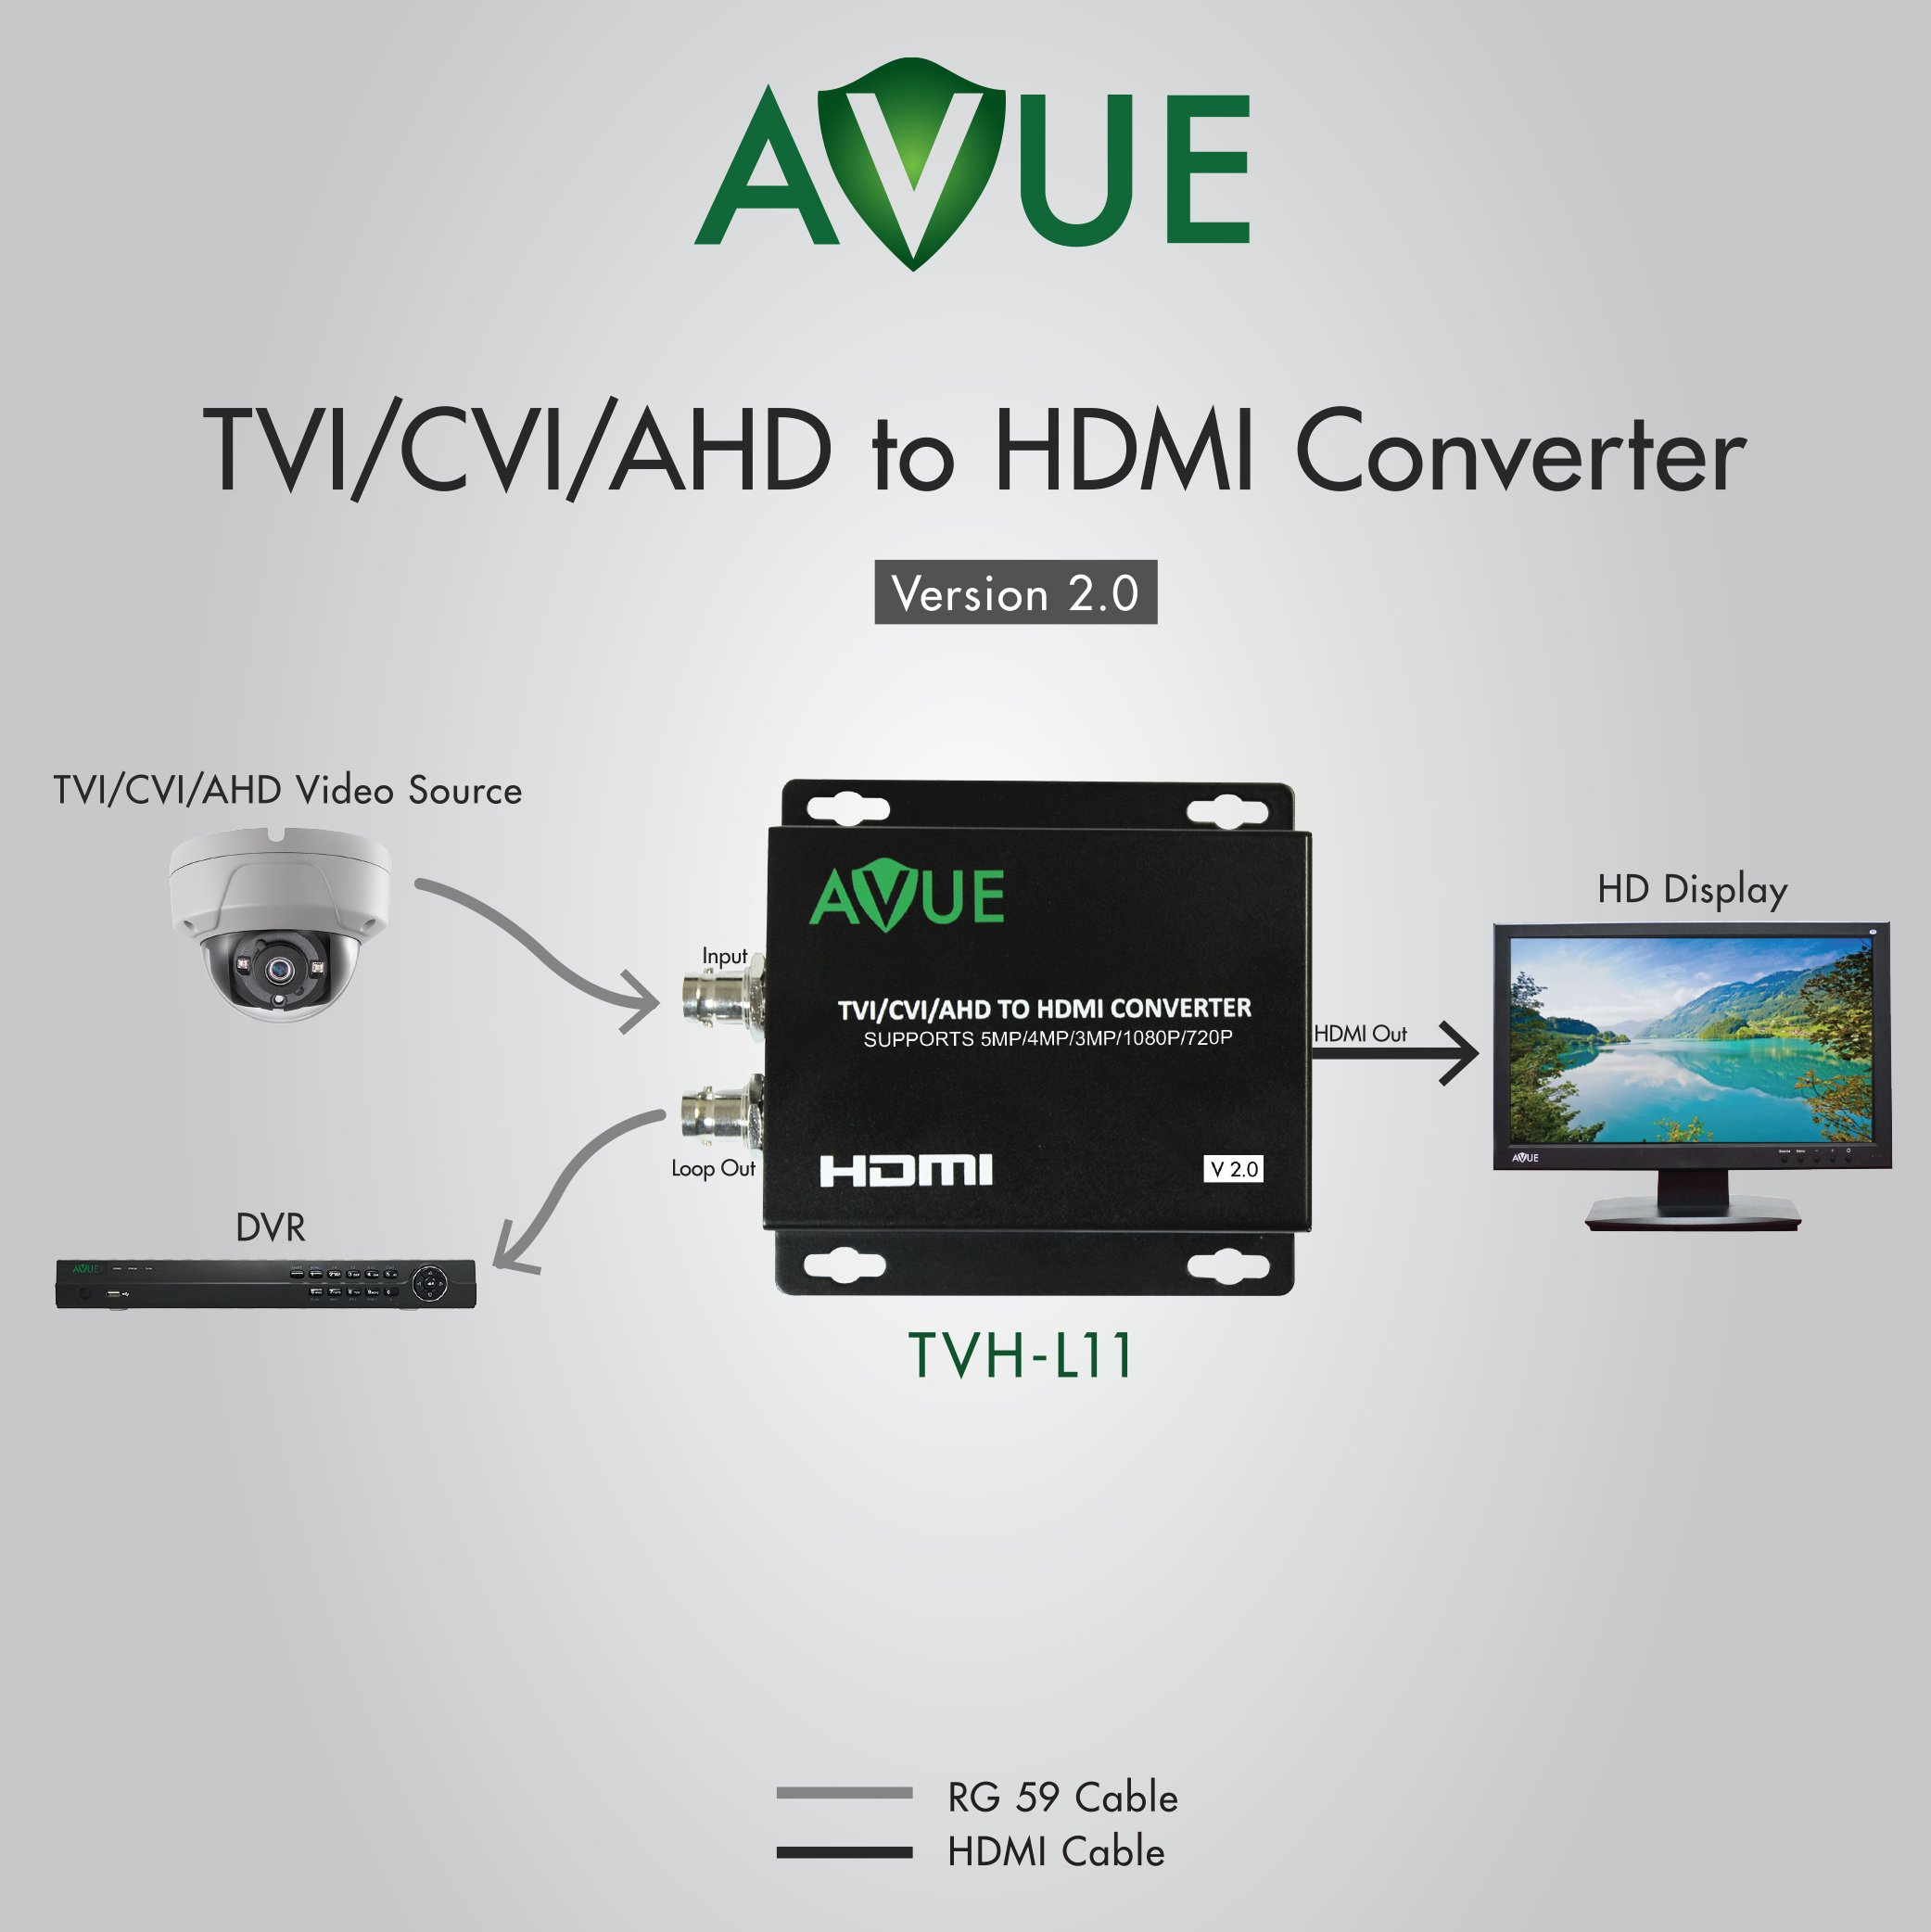 AVUE TVH-L11 TVI/CVI/AHD to HDMI Converter V2.0 Supports 5MP(TVI/AHD), 4MP, 3MP, 1080P and 720P by AVUE